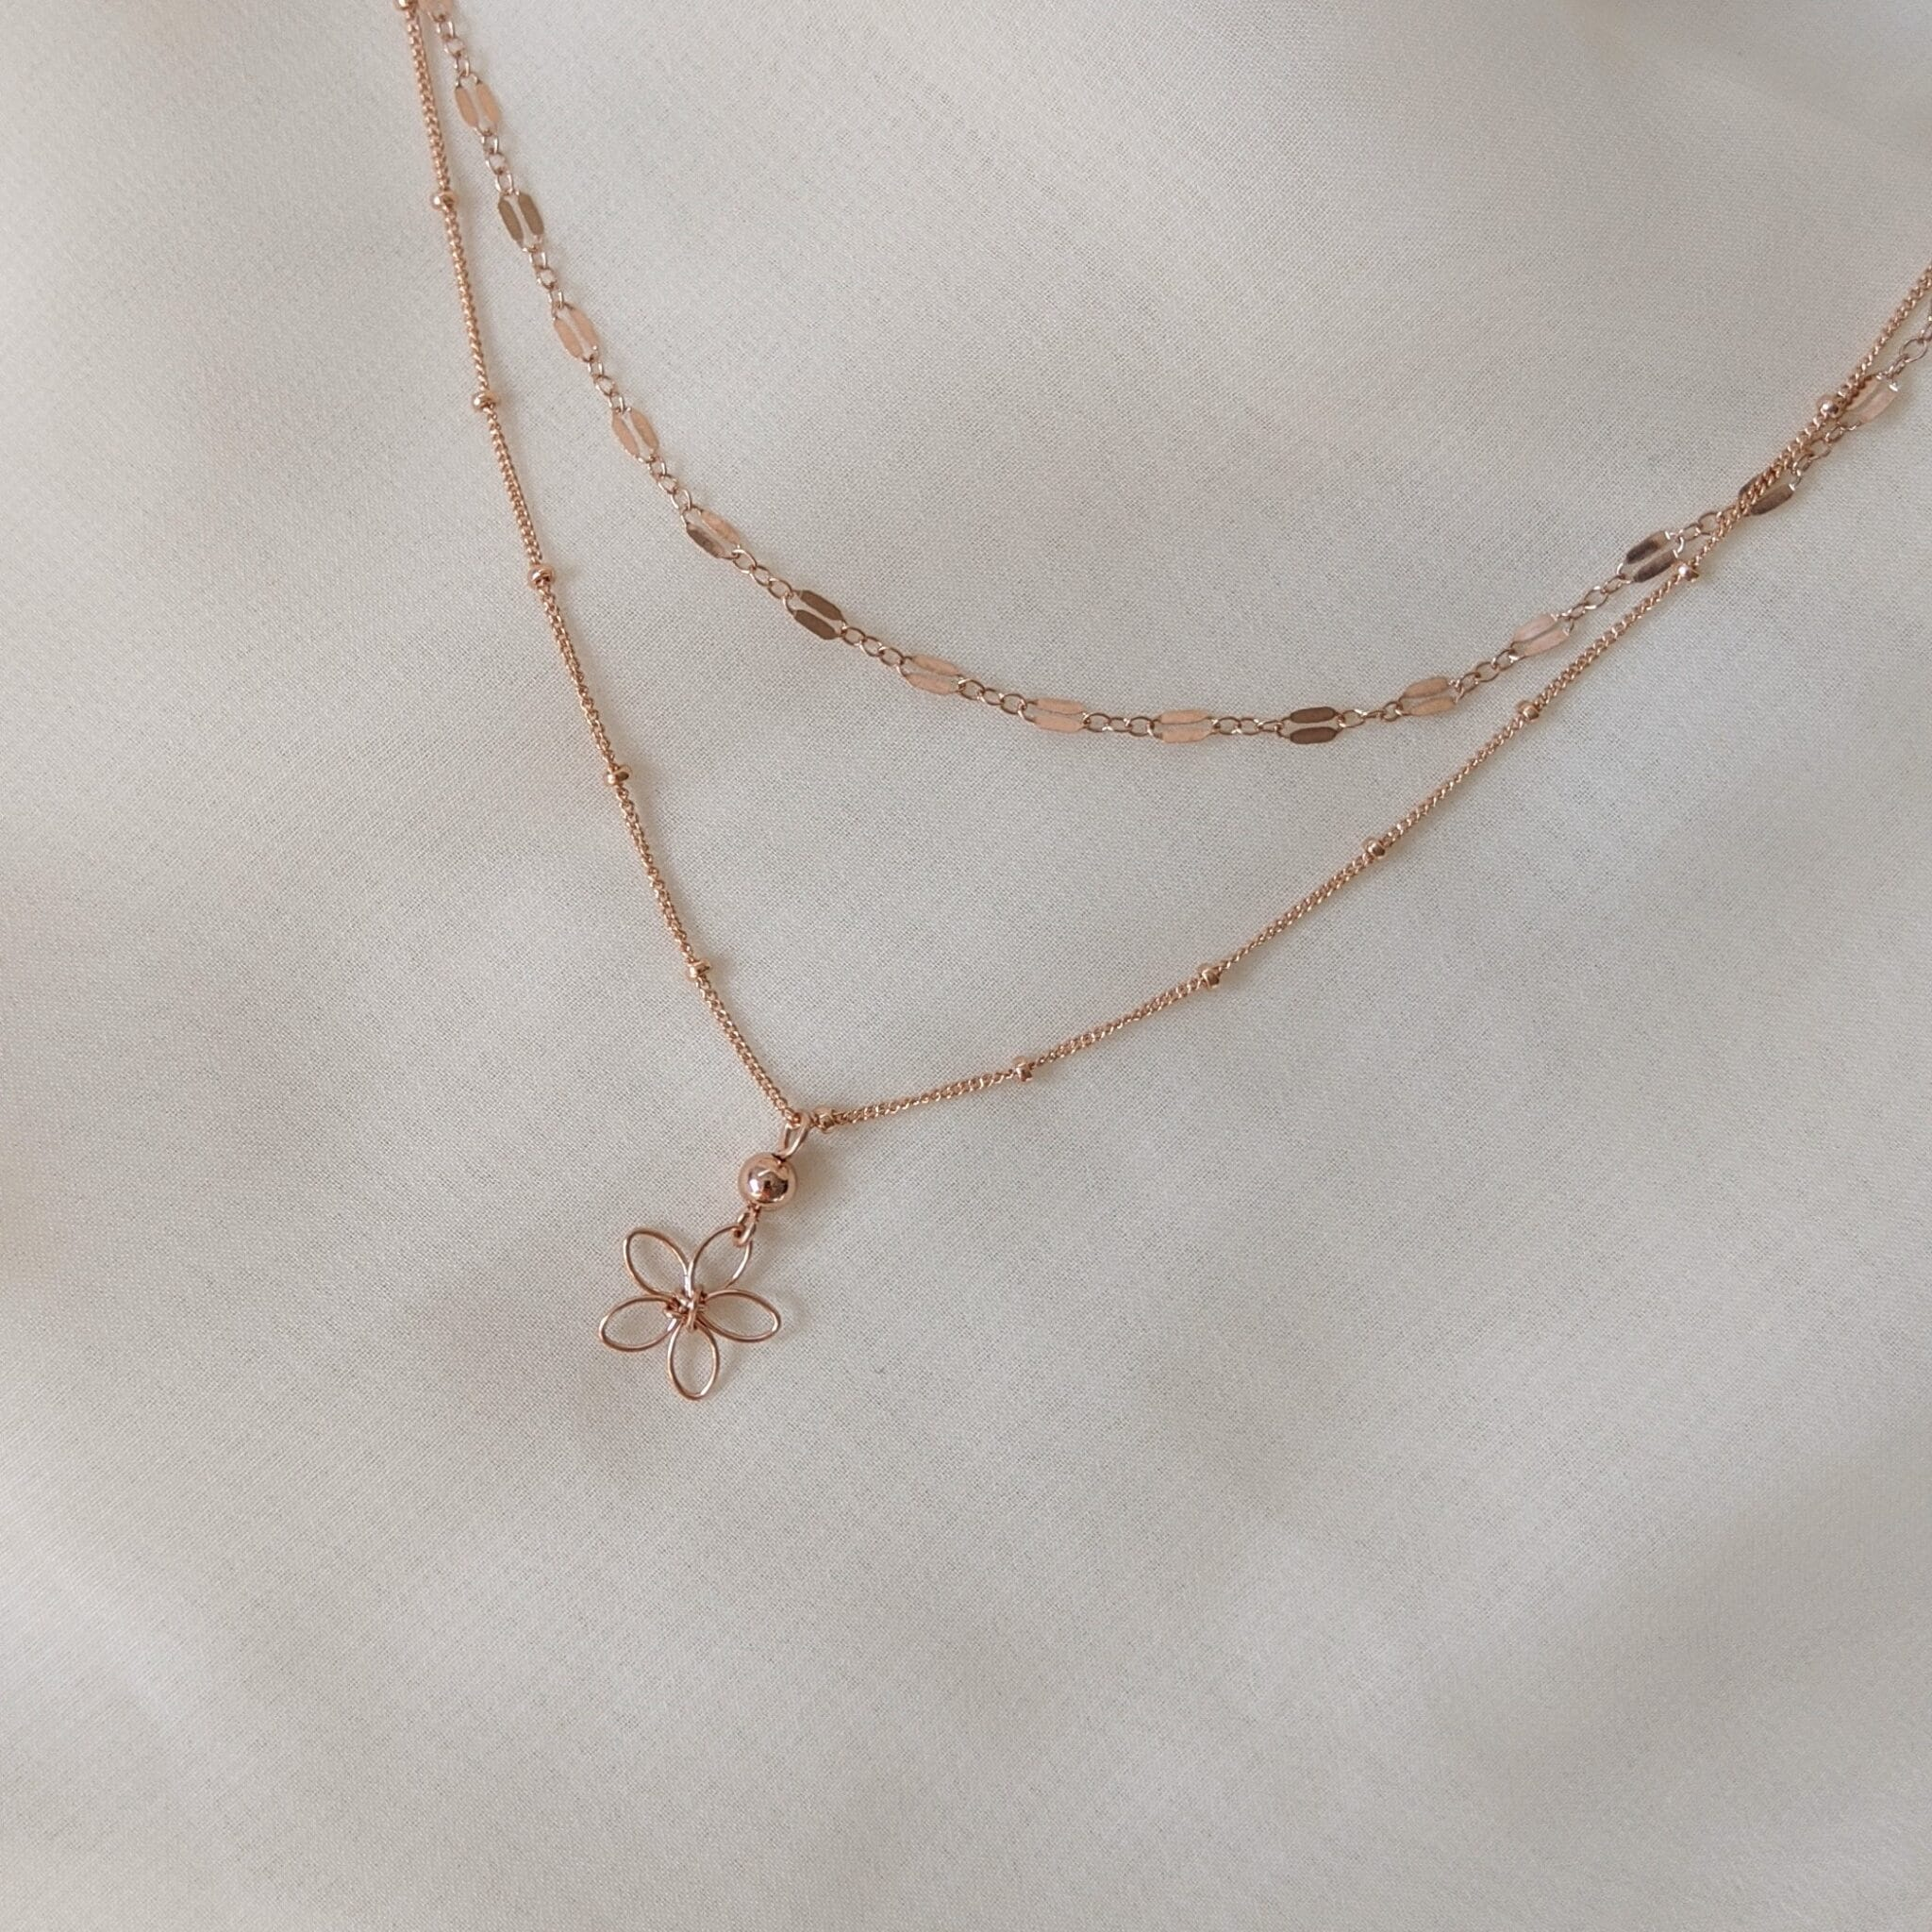 Sea Lavender Necklace – Rose Gold Filled By Little Hangings